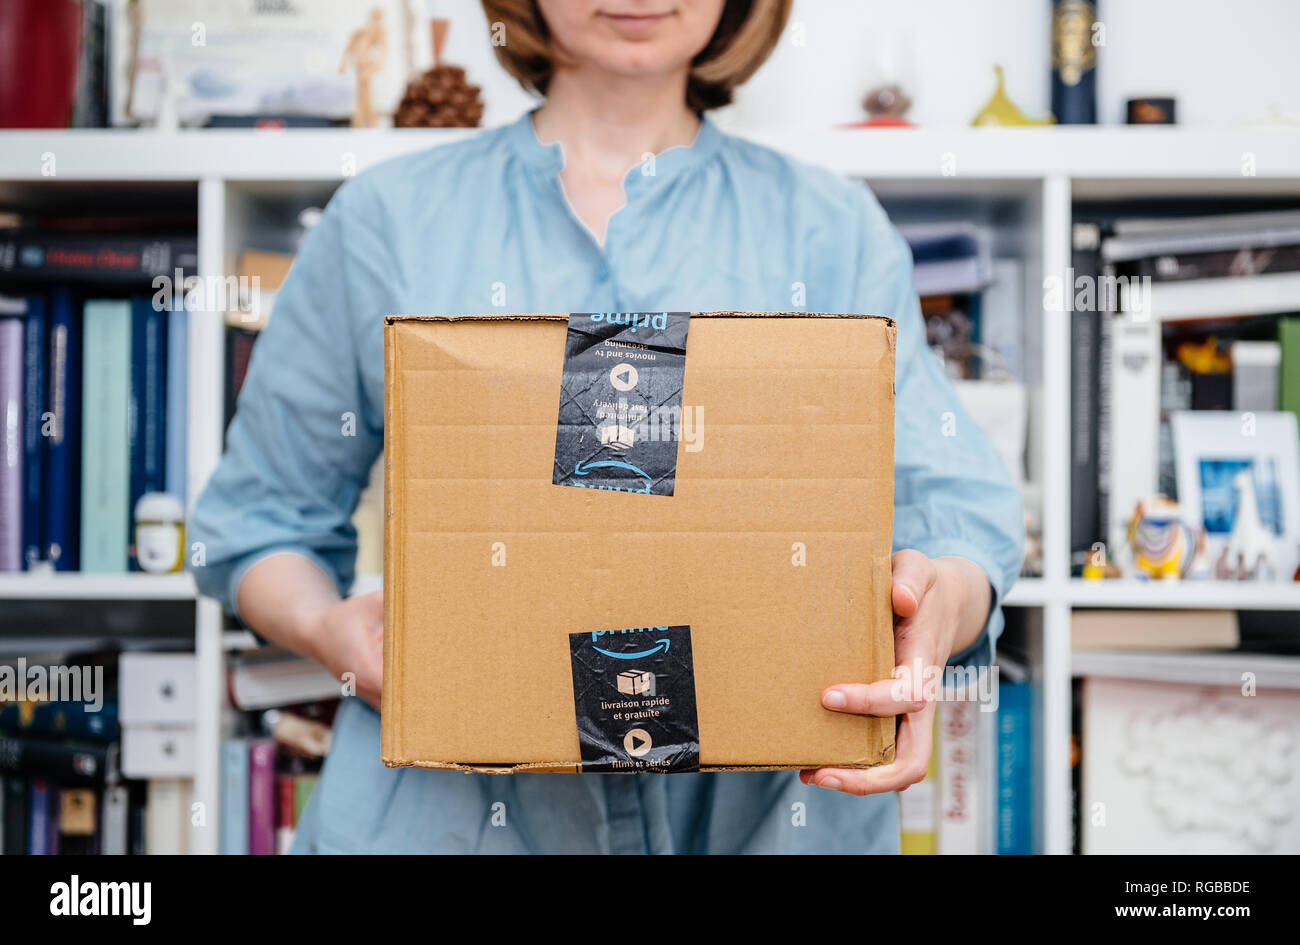 Amazon Usa Livraison France Amazon Prime Package Stock Photos Amazon Prime Package Stock